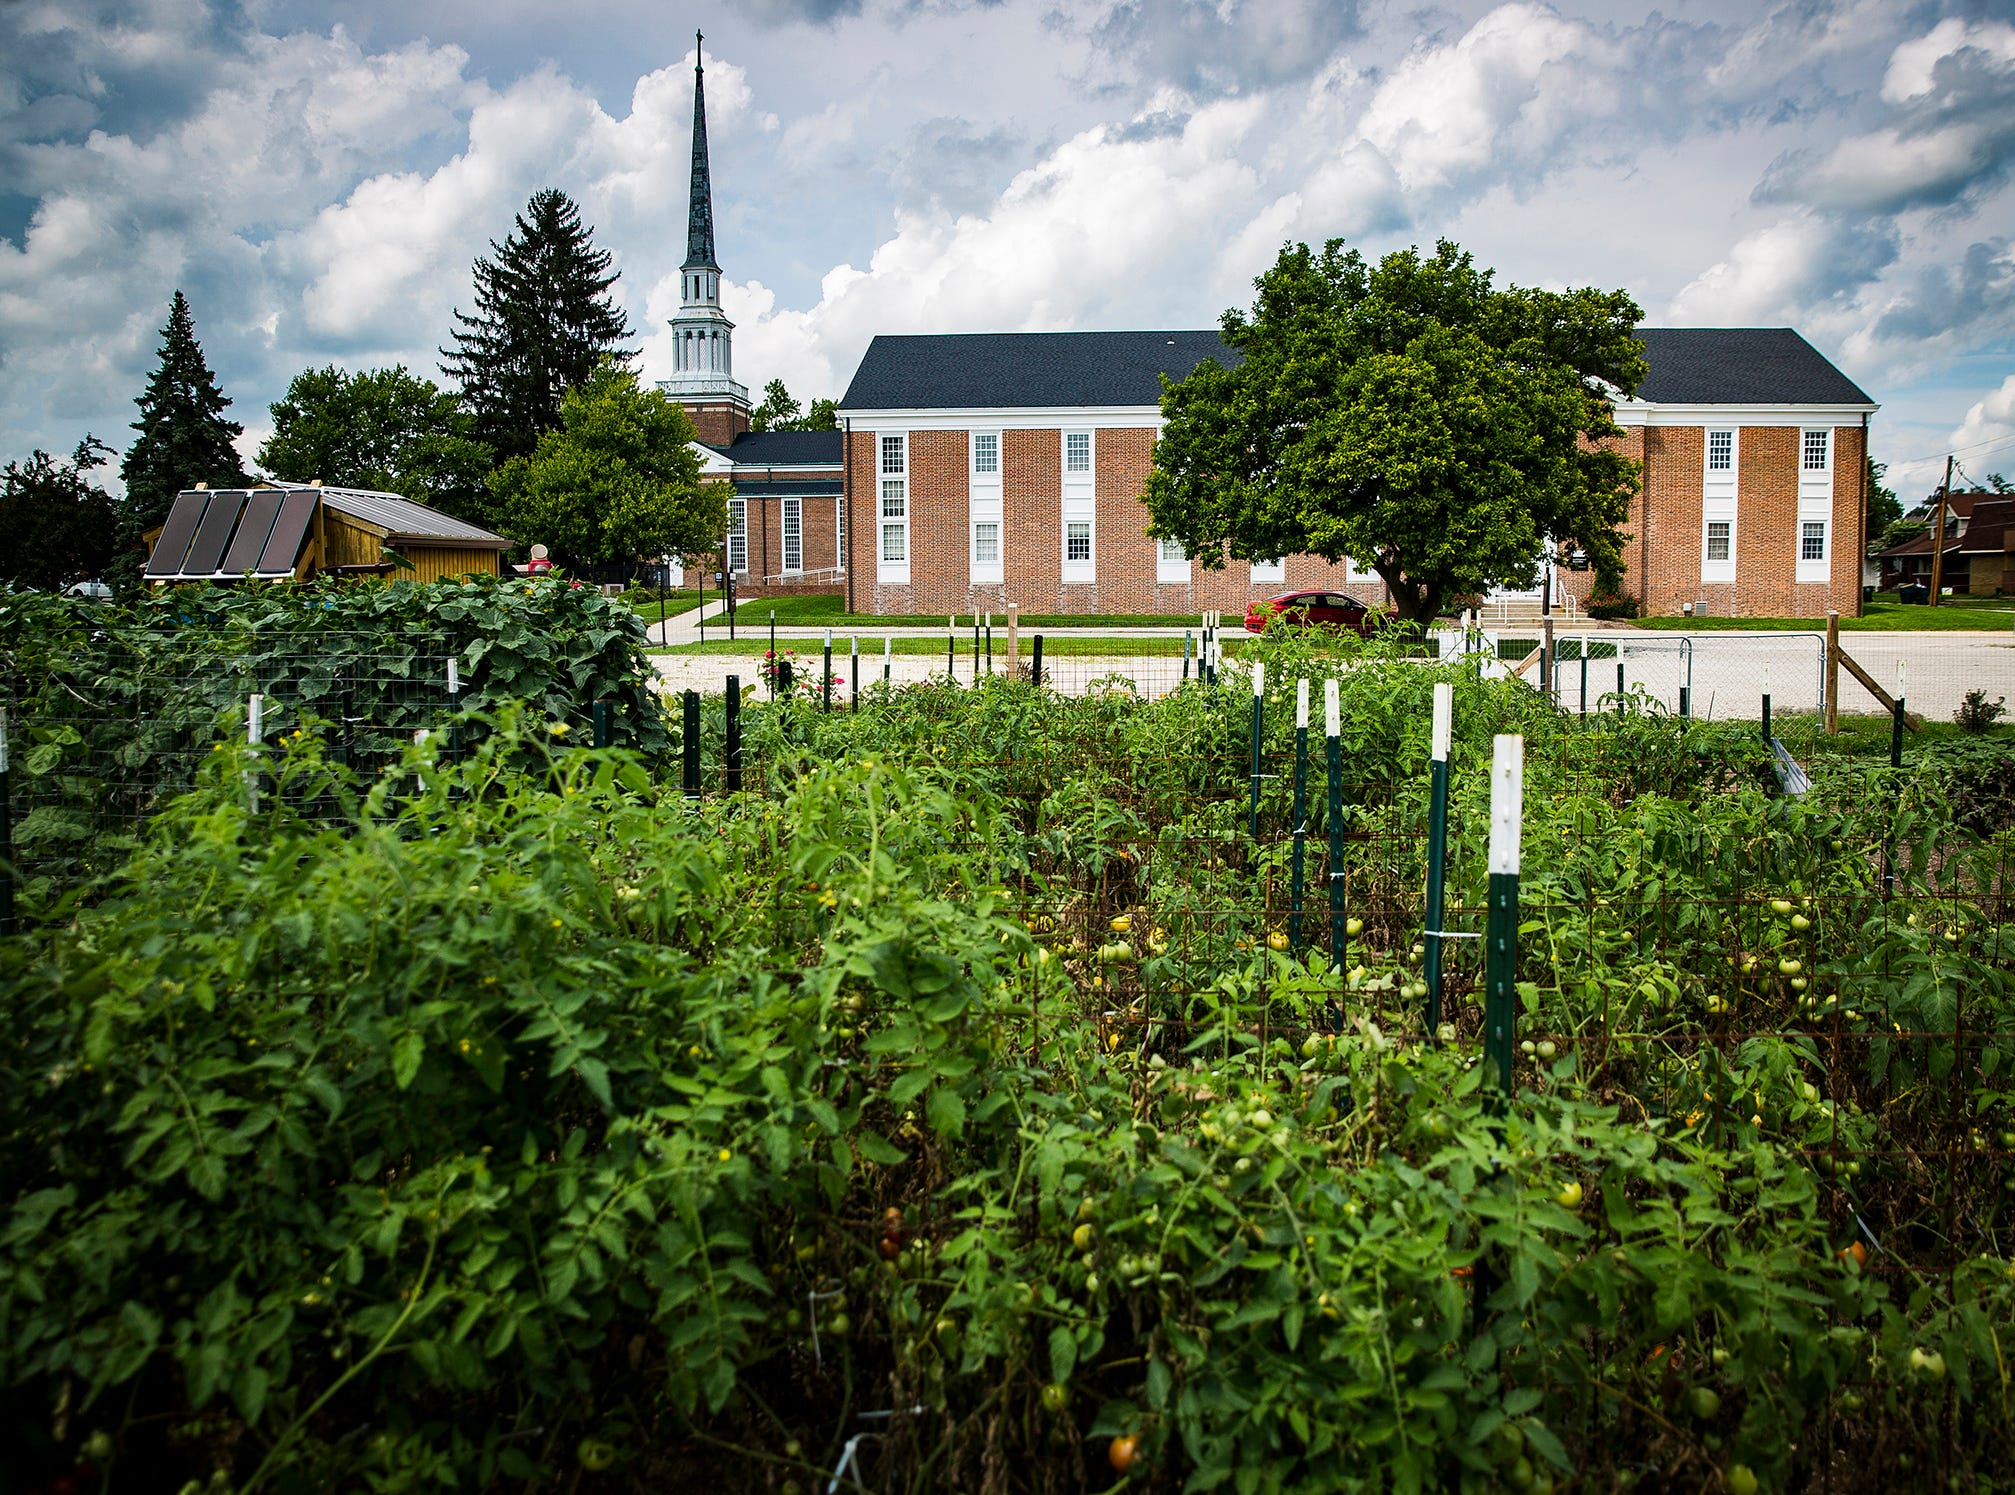 The College Avenue United Methodist Church community garden uses a solar powered irrigation system.